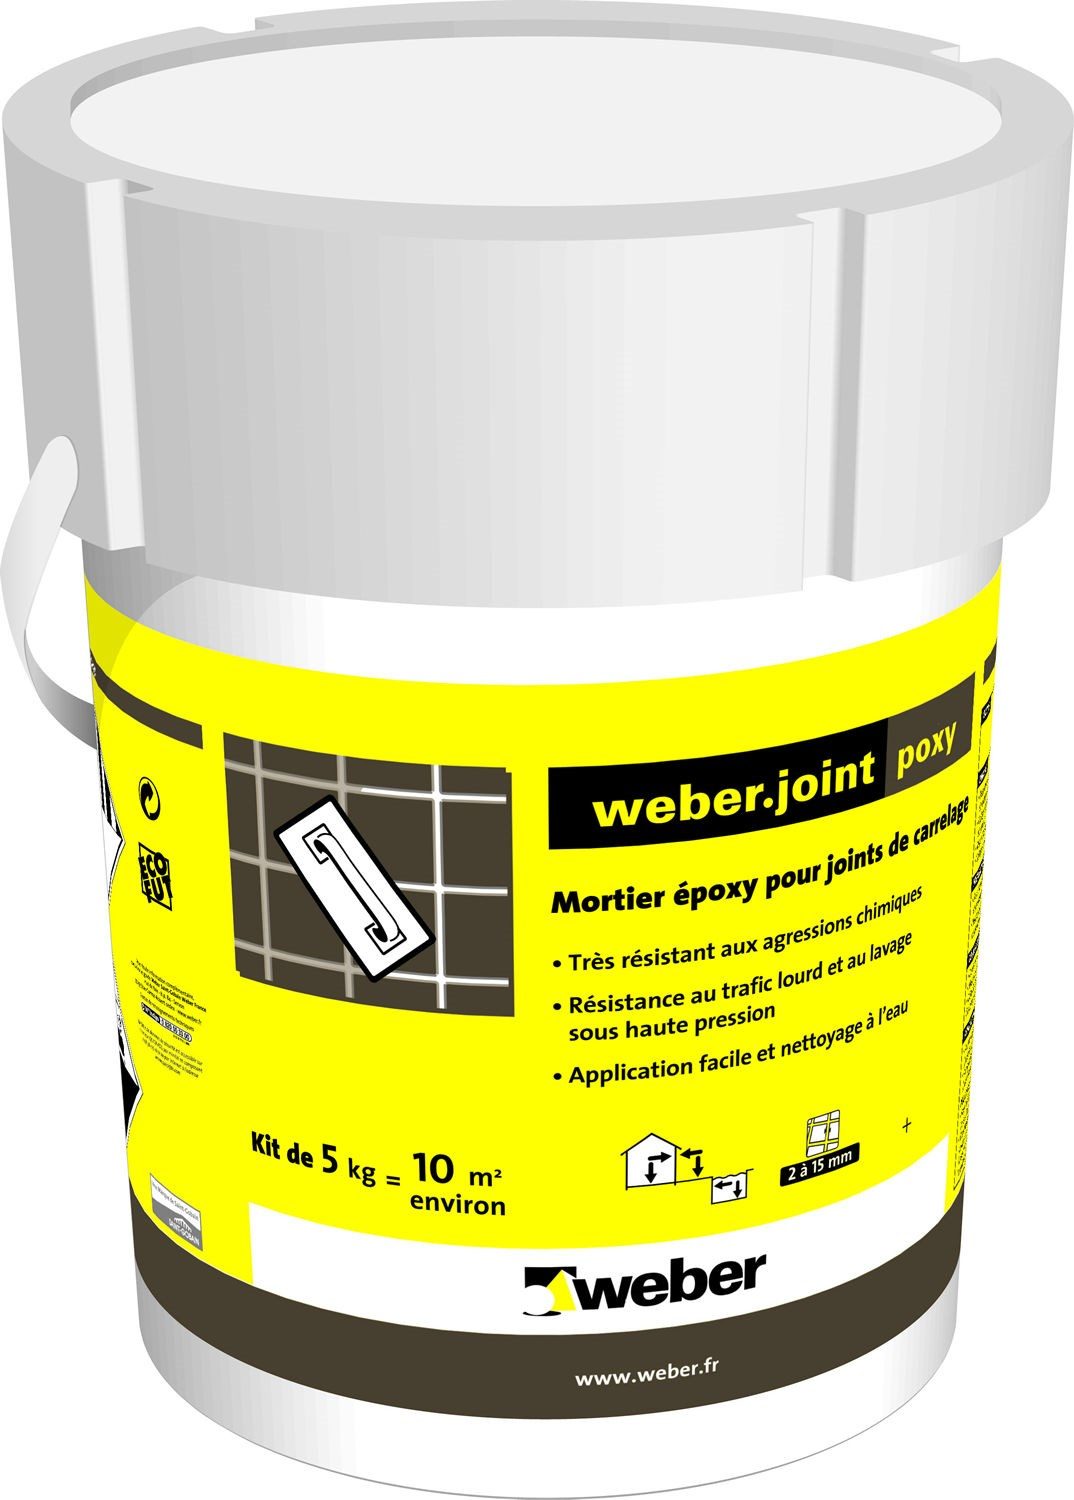 mortier pour joints de carrelage weber joint poxy weber